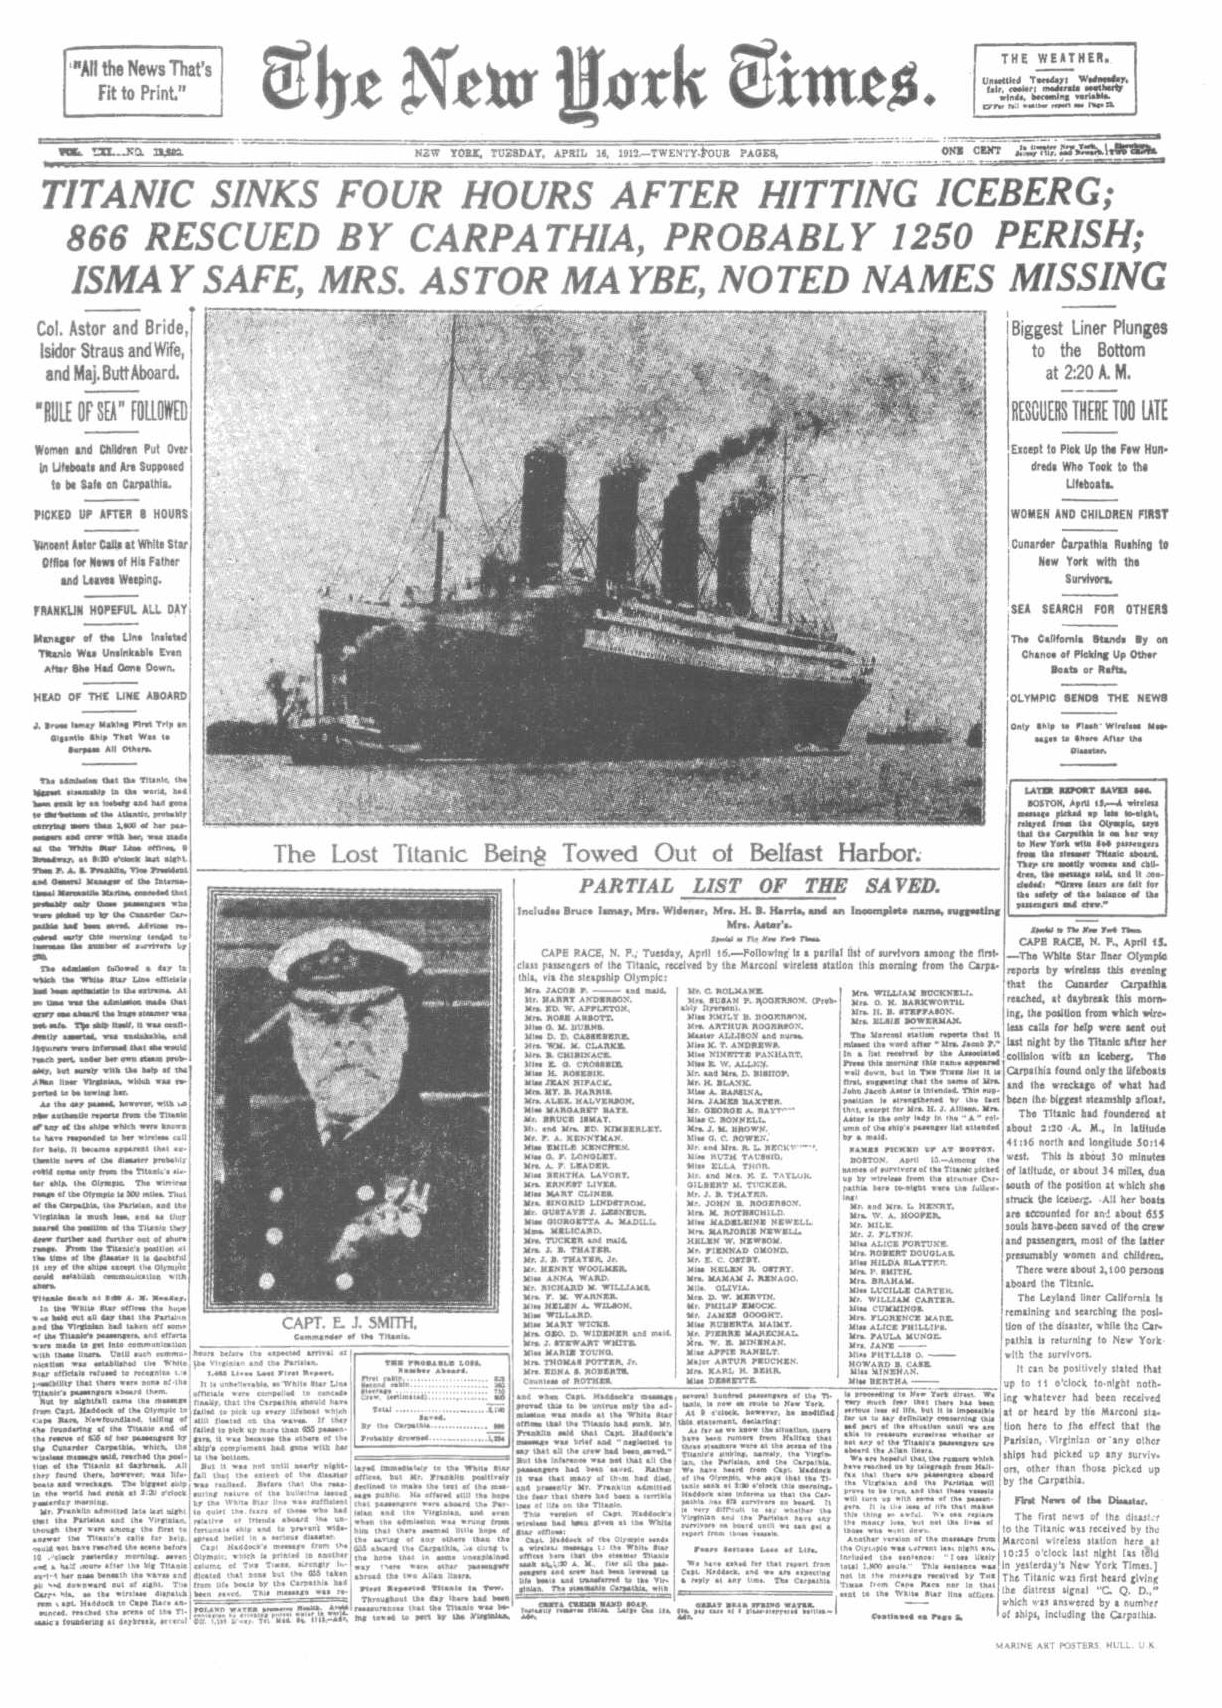 1912-04-16 the new york times.jpg